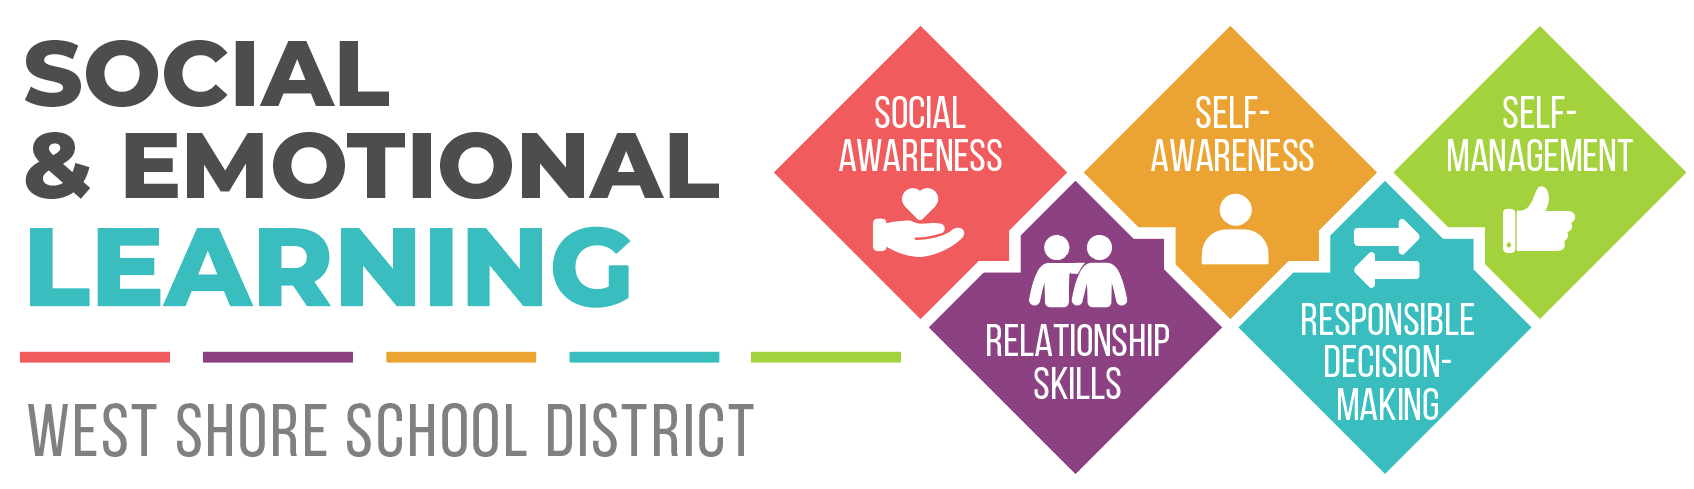 social emotional learning logo